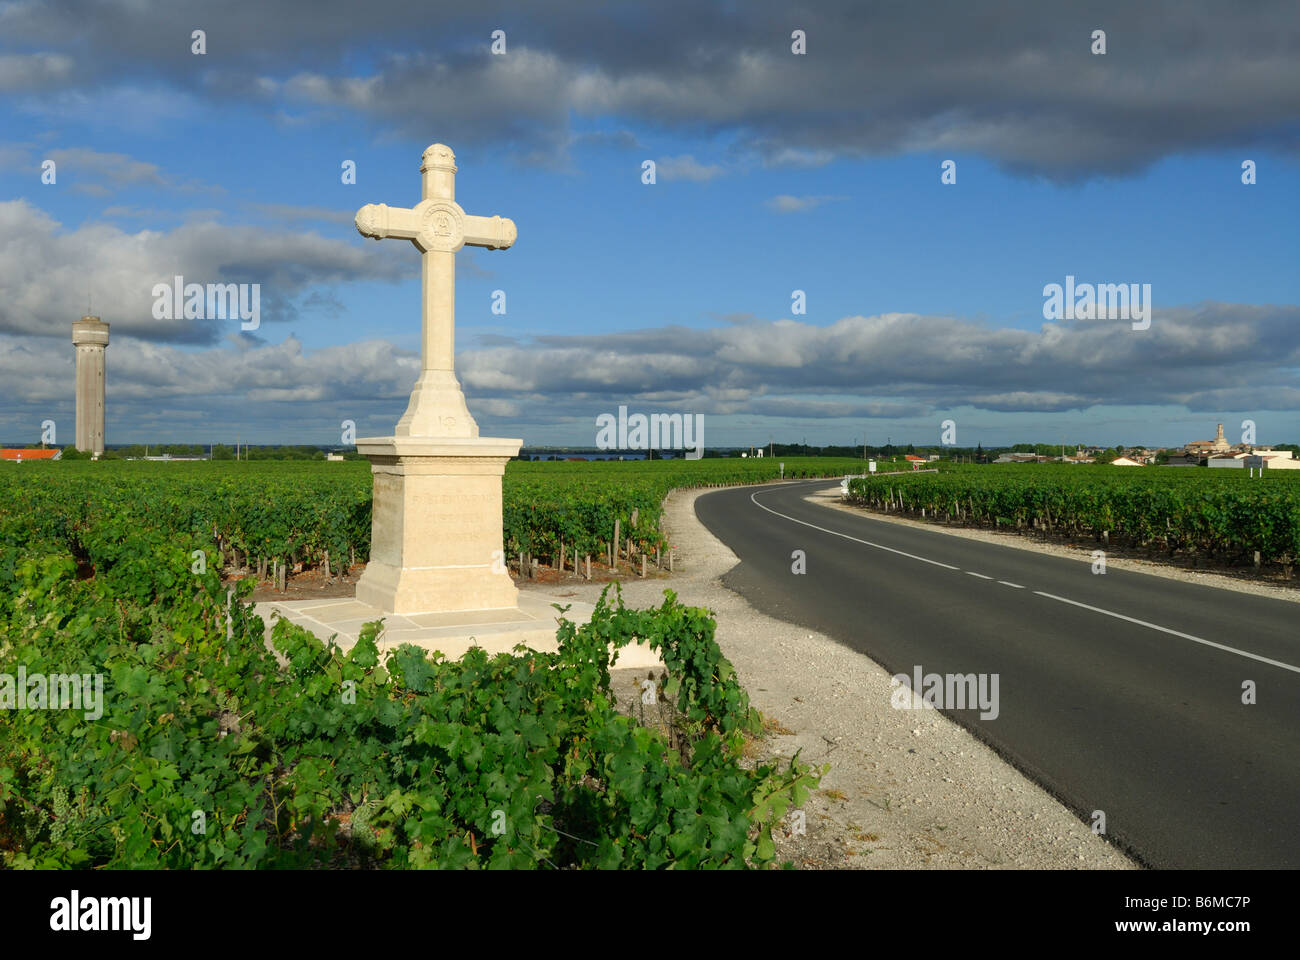 Pauillac France A cross stands at the edge of a vineyard at the edge of the town of Pauillac - Stock Image